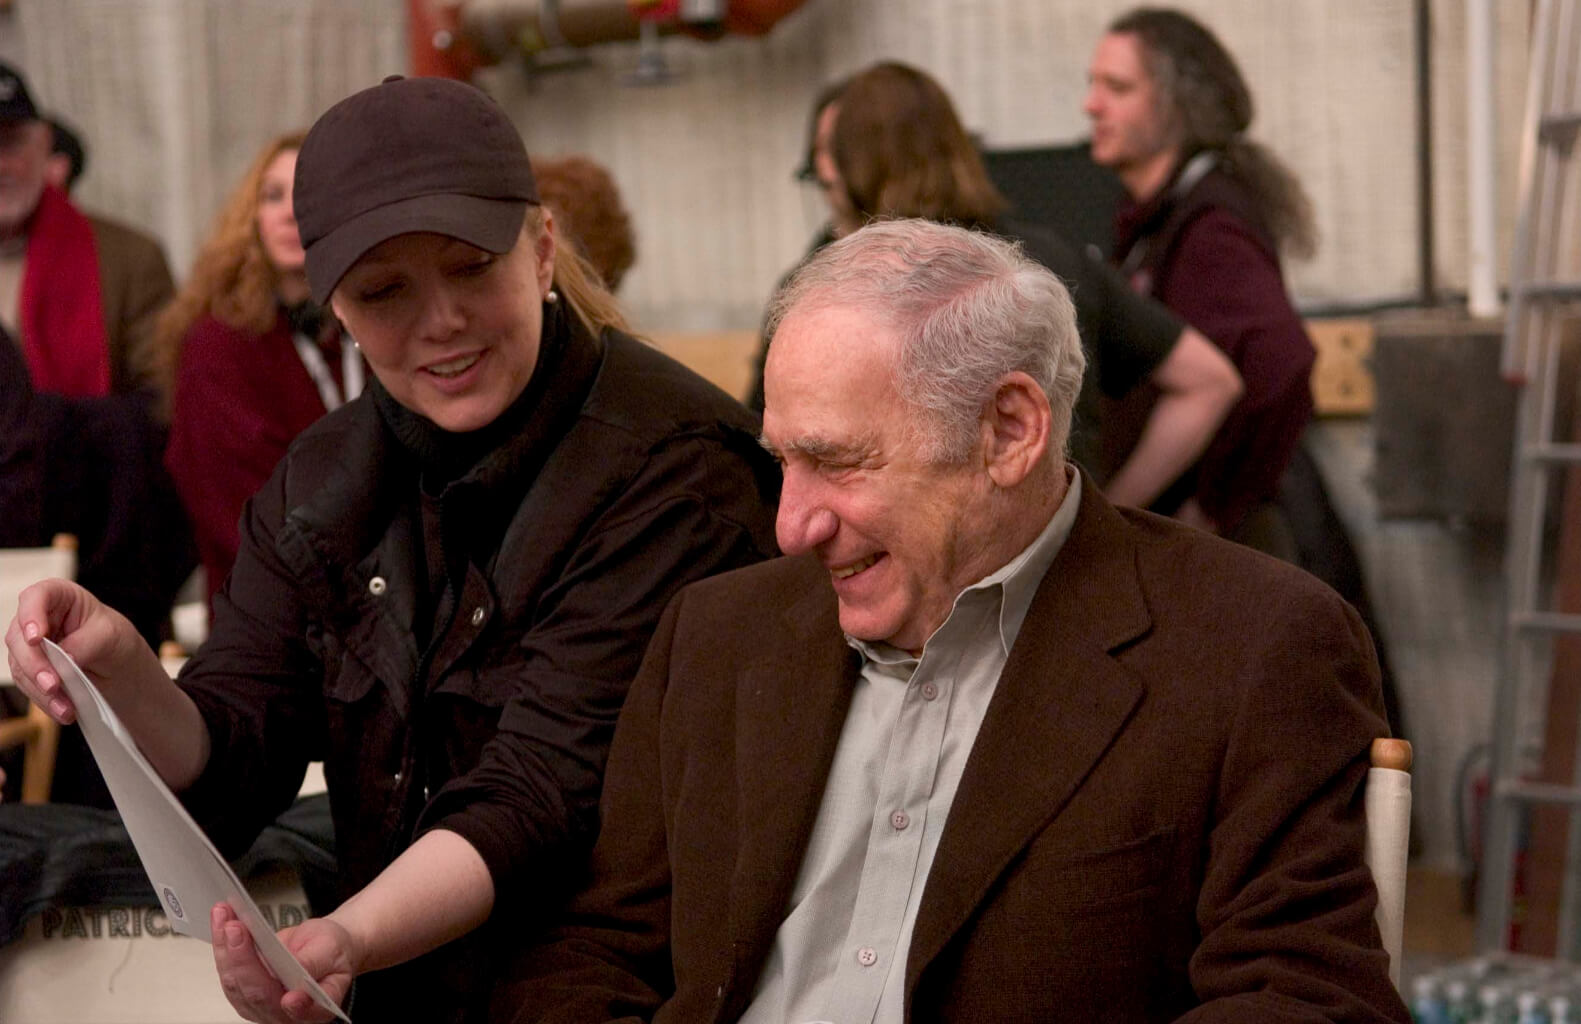 Susan Stroman and Mel Brooks during rehearsal. Stro is showing Mel some photos.